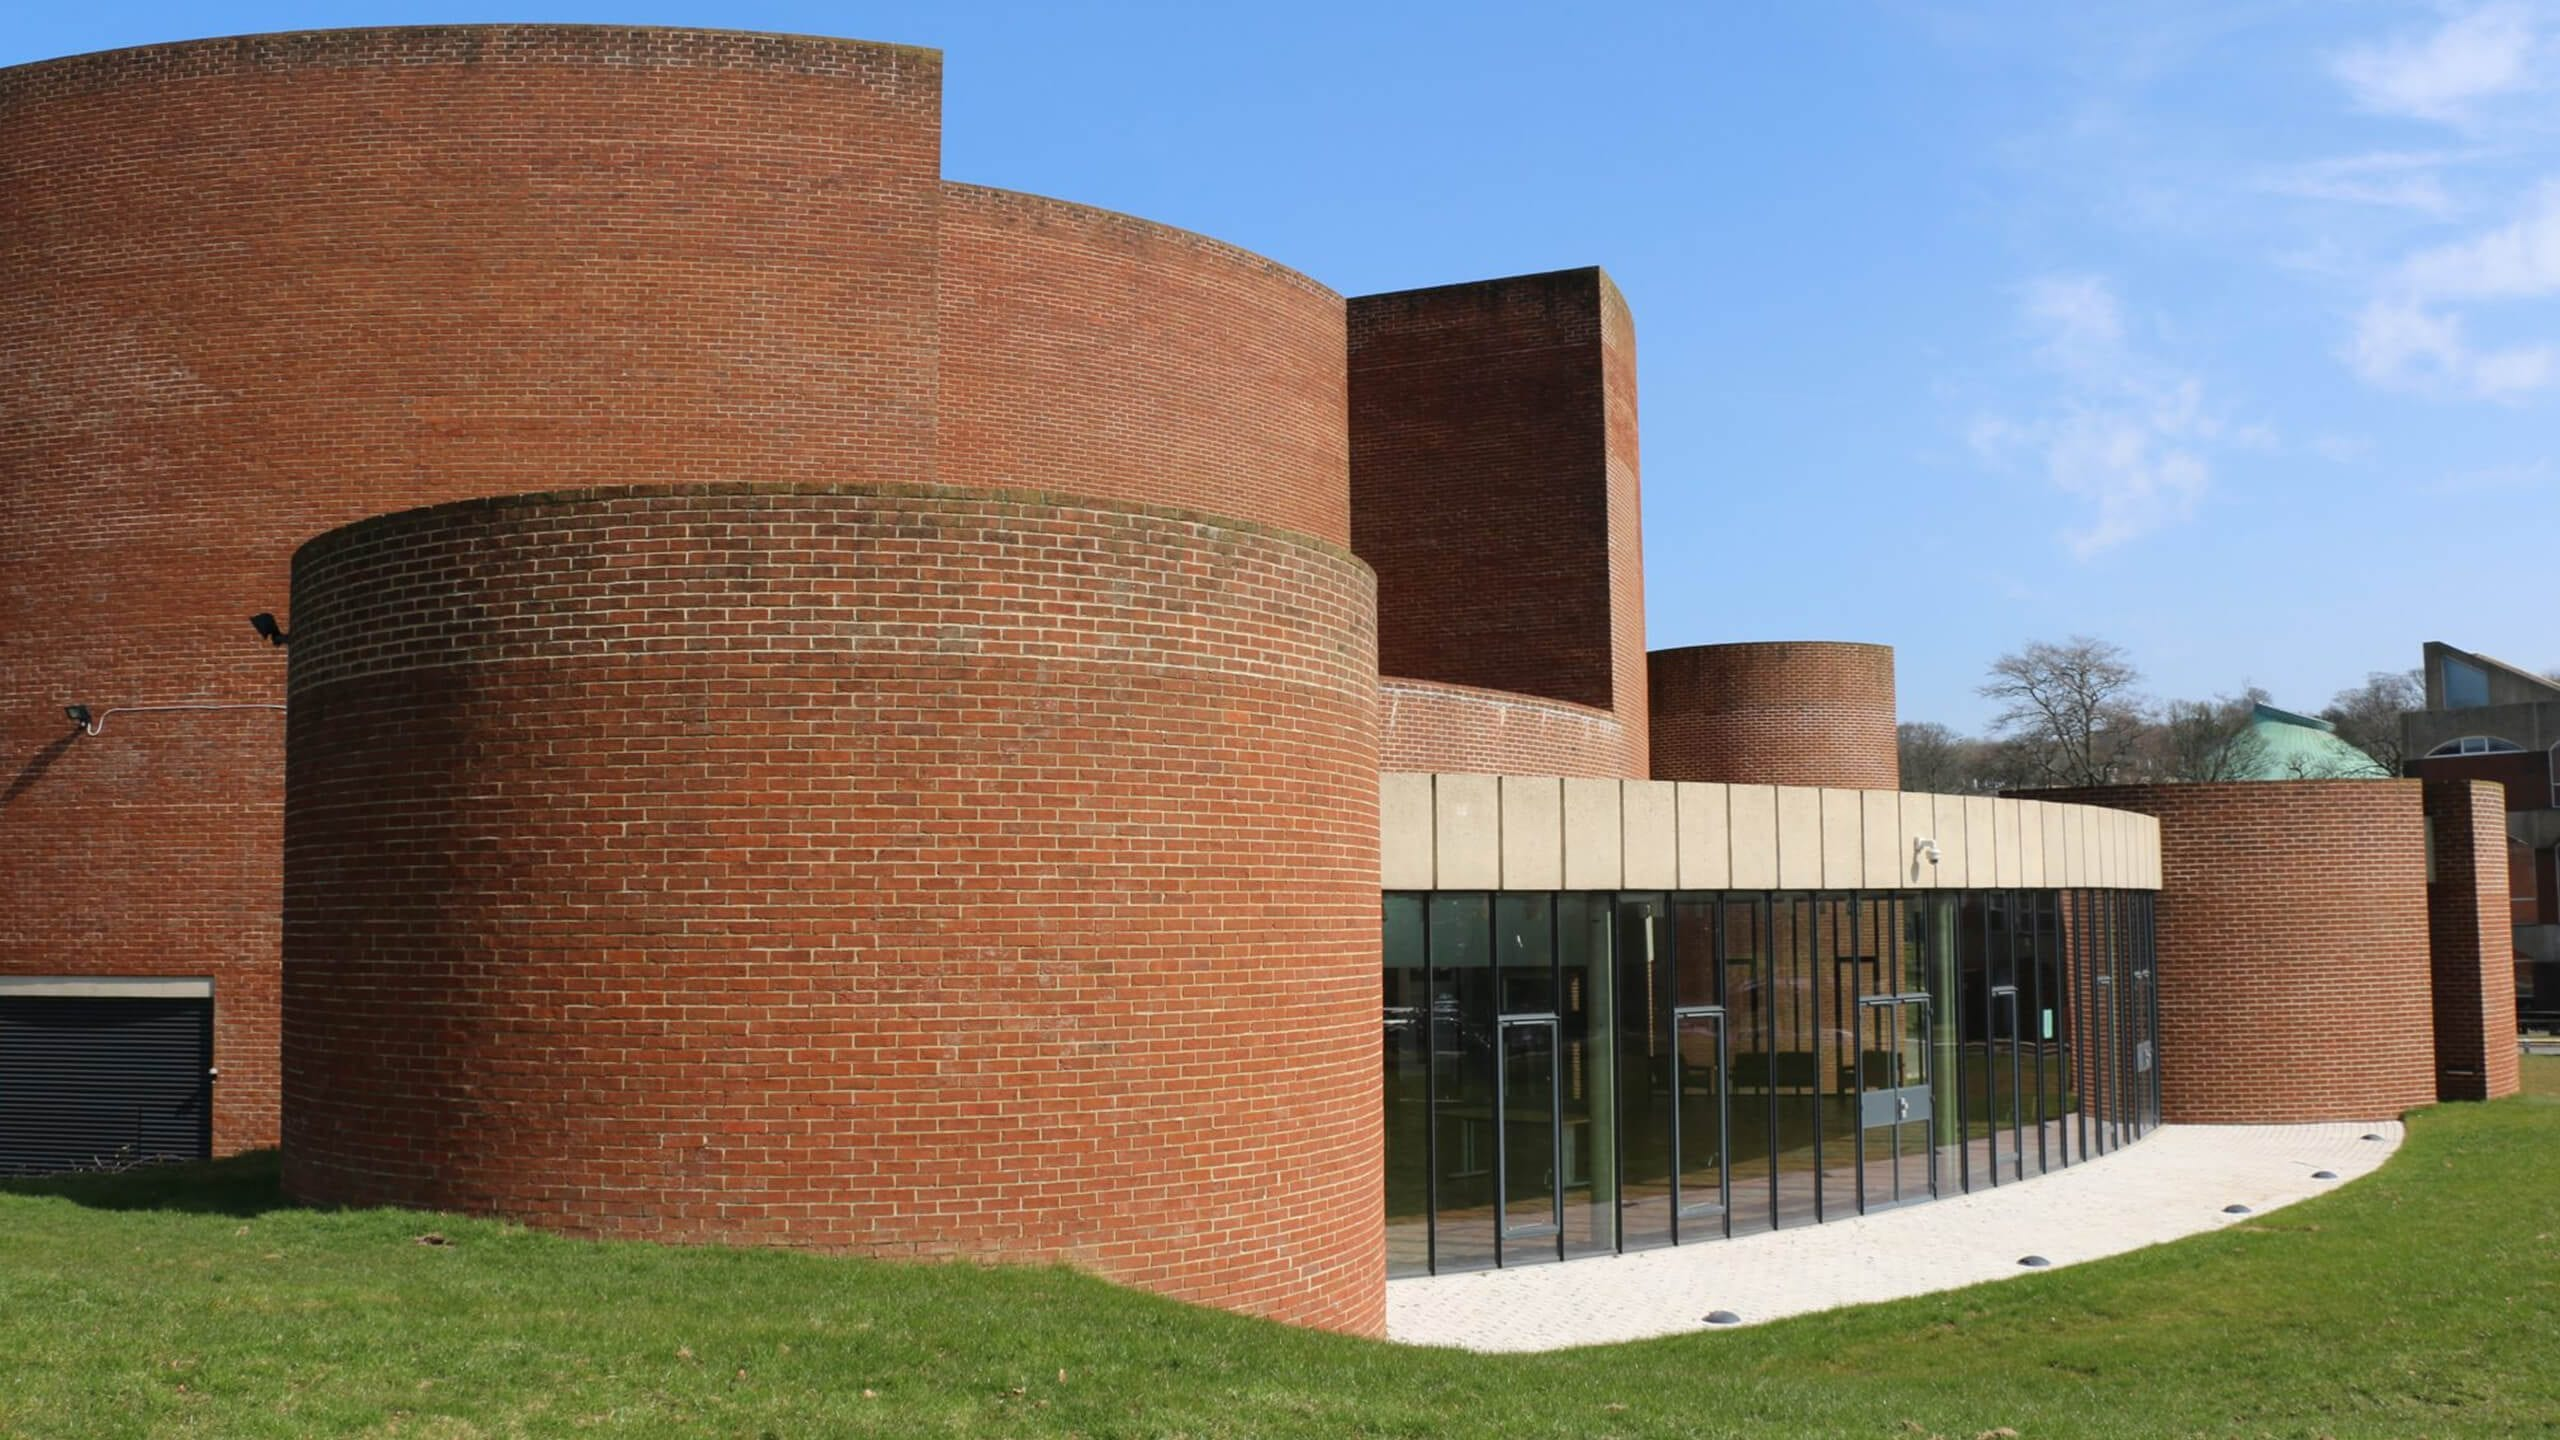 Crittall Iconic Art Centre's Winning Performance With Crittall Windows Image 01